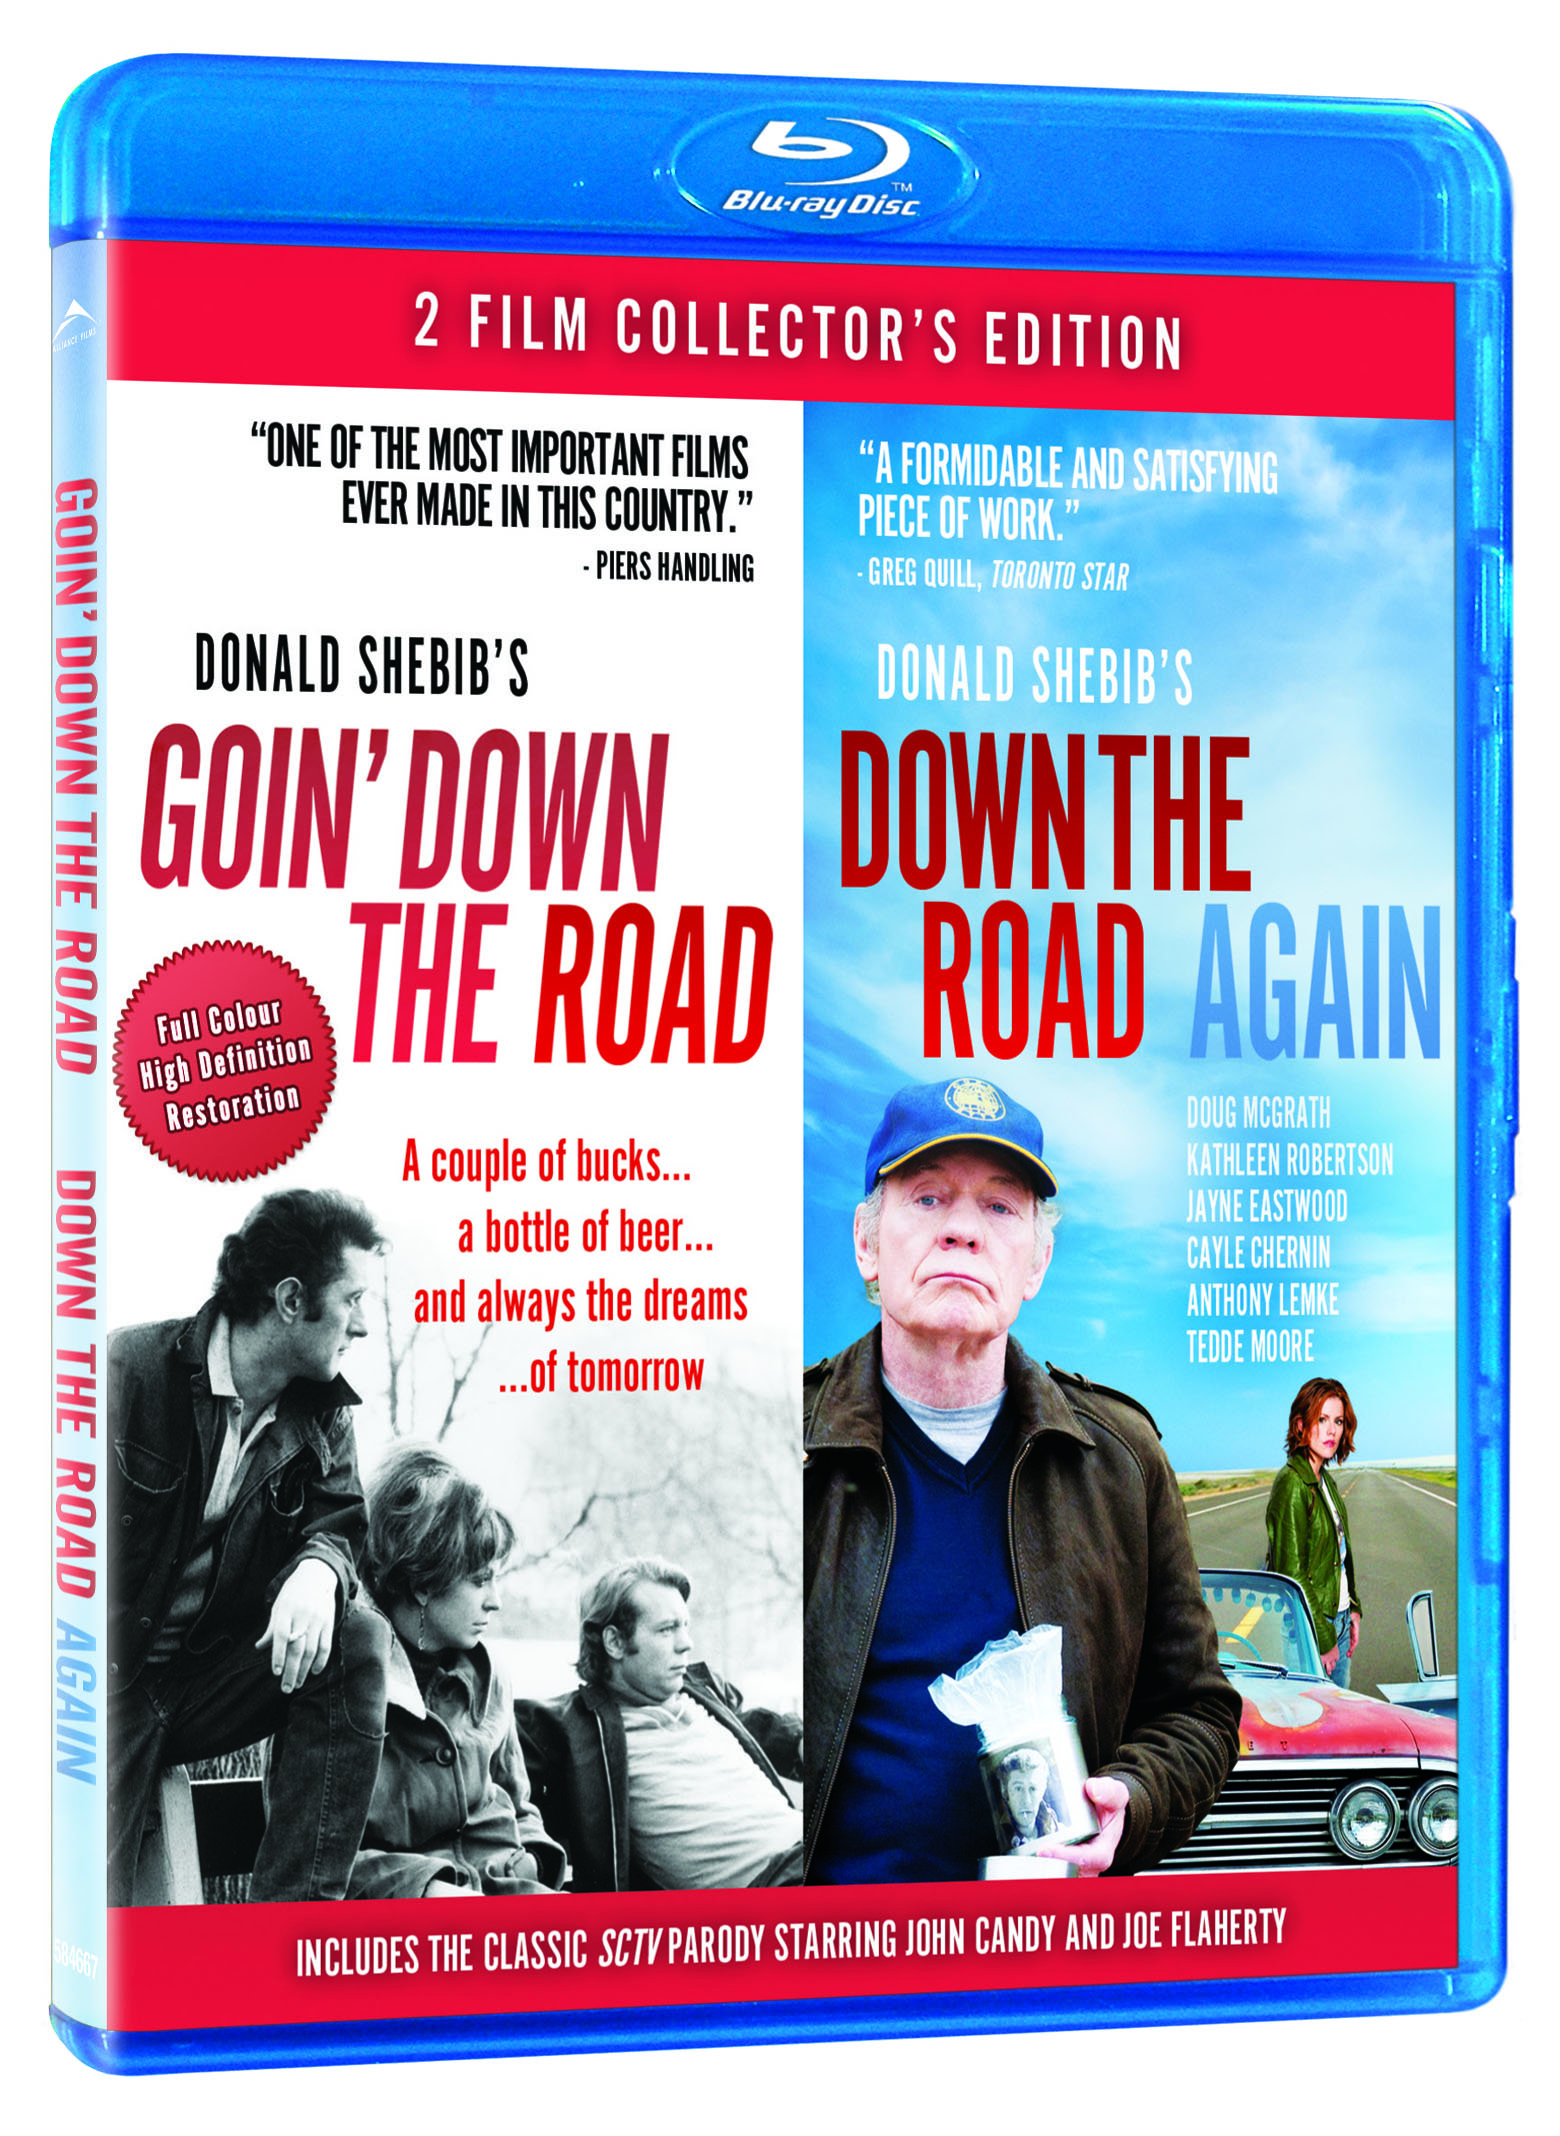 Goin' Down The Road/Down The Road Again Announced For Blu-Ray In July